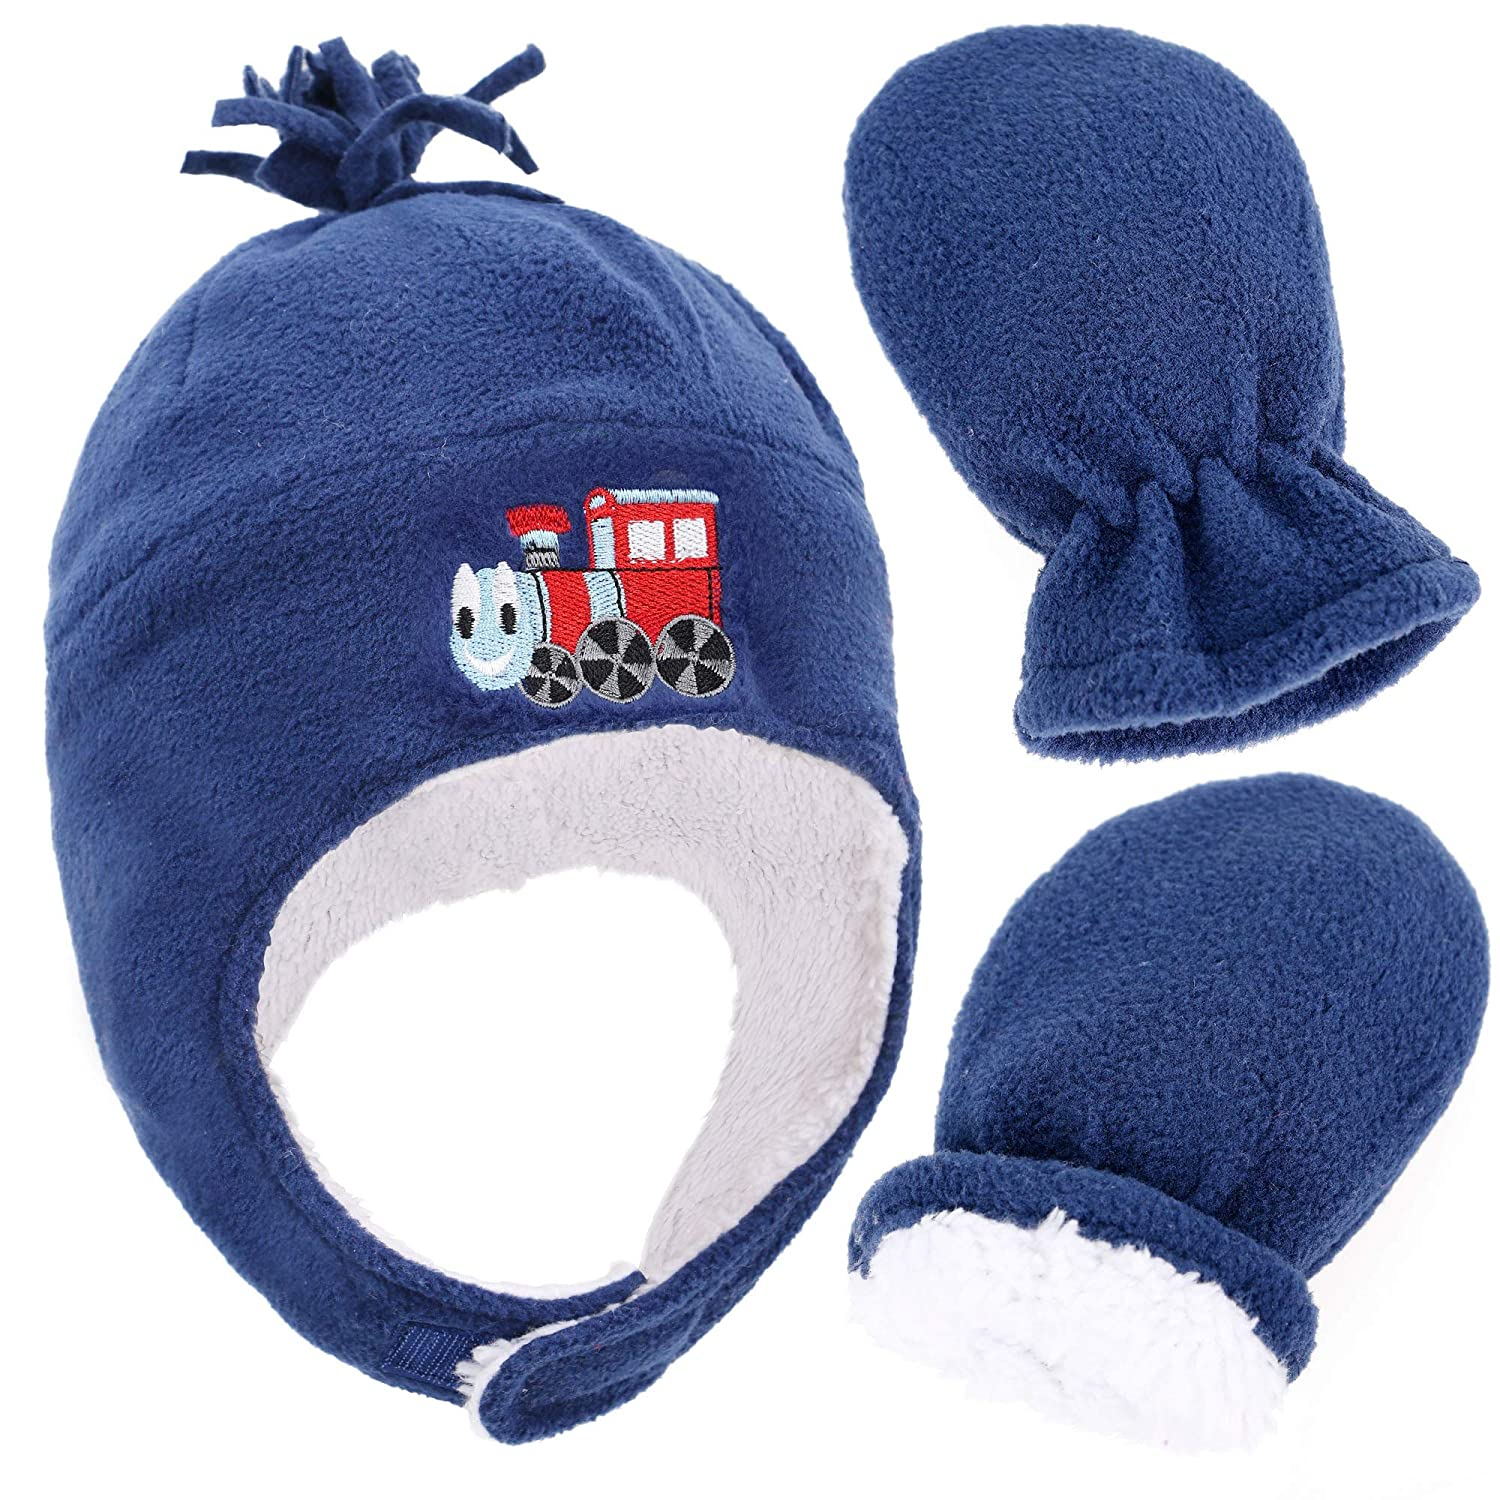 SimpliKids Kids and Toddlers Sherpa Lined Embroidered Fleece Hat and Mitten Set